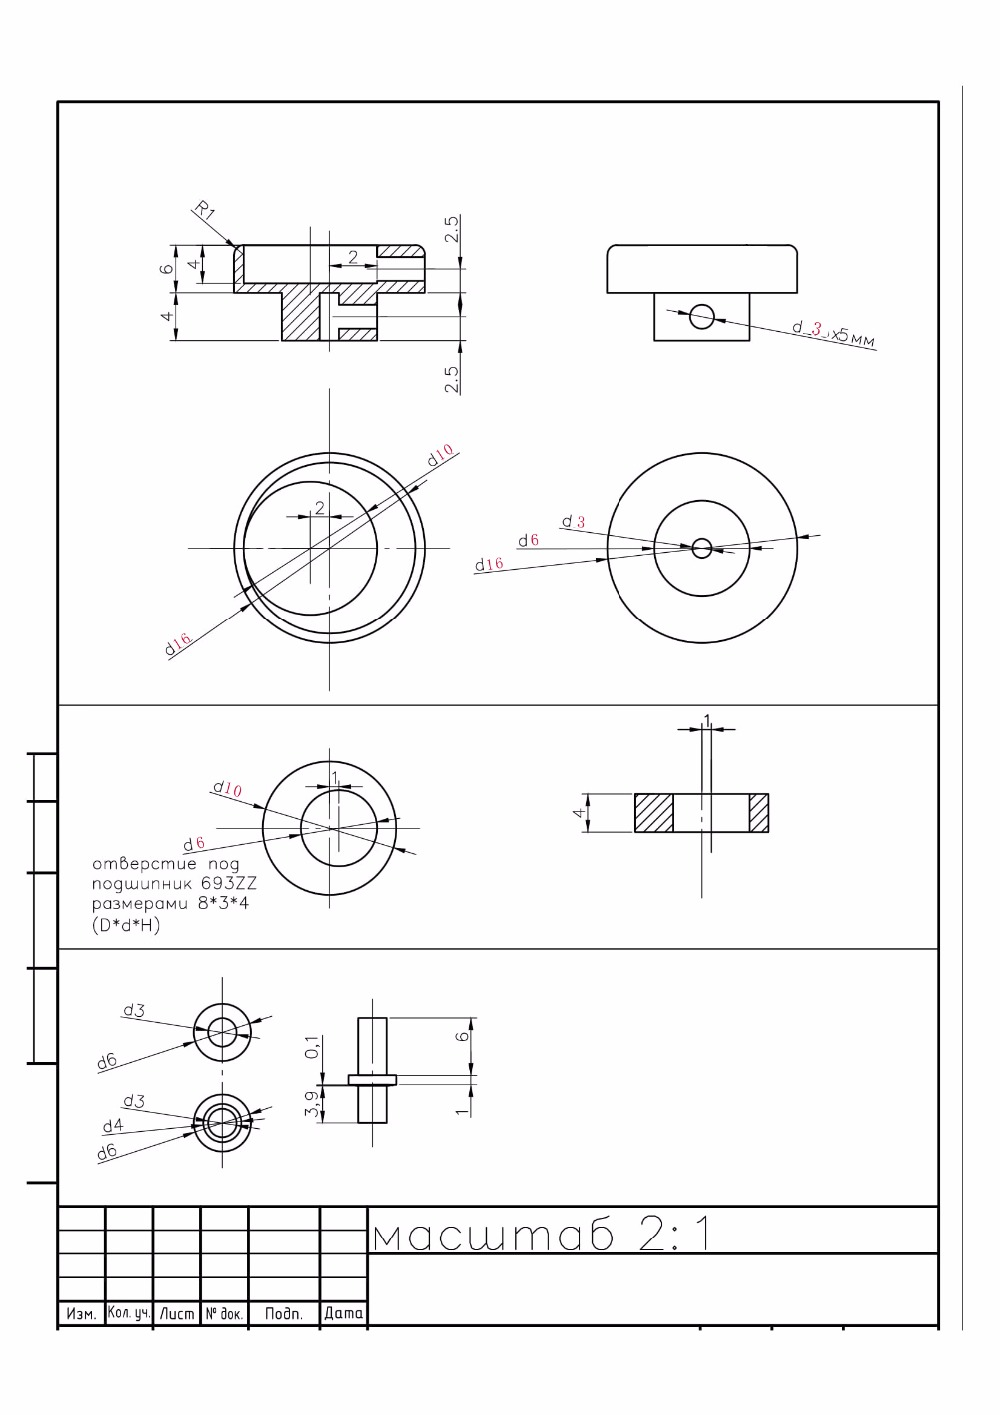 Cnc Adjustable Bearing Cam Replacement Parts Rotary Tattoo Gun Machine Diagram Replace Accessories Wheel In Guns From Beauty Health